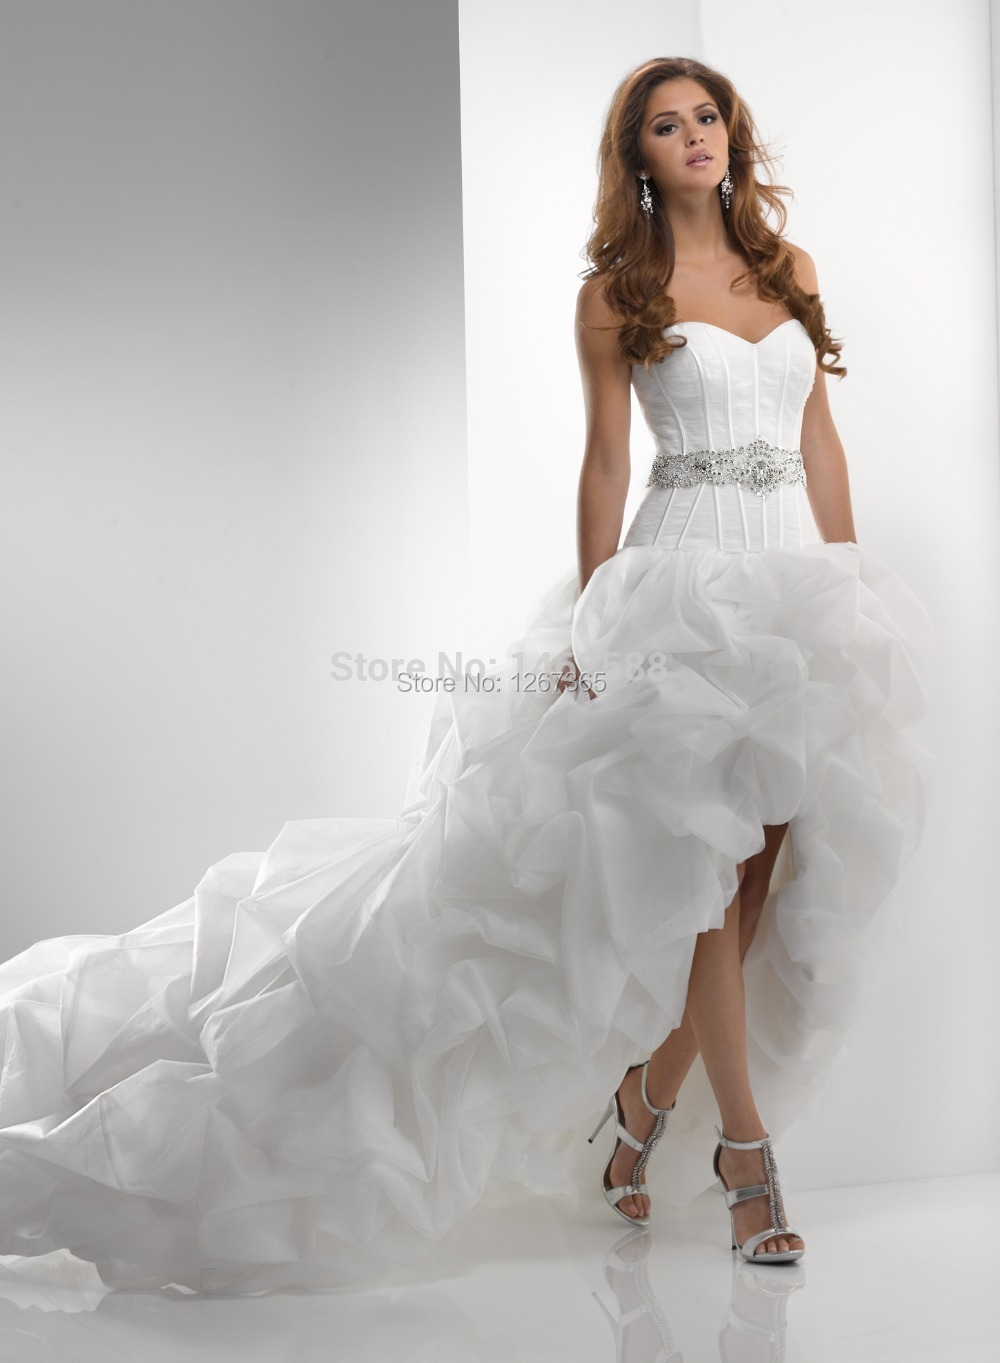 7eb160be3fbbc Catherine Sweetheart High/Low Wedding Dresses with Chapel Train ...